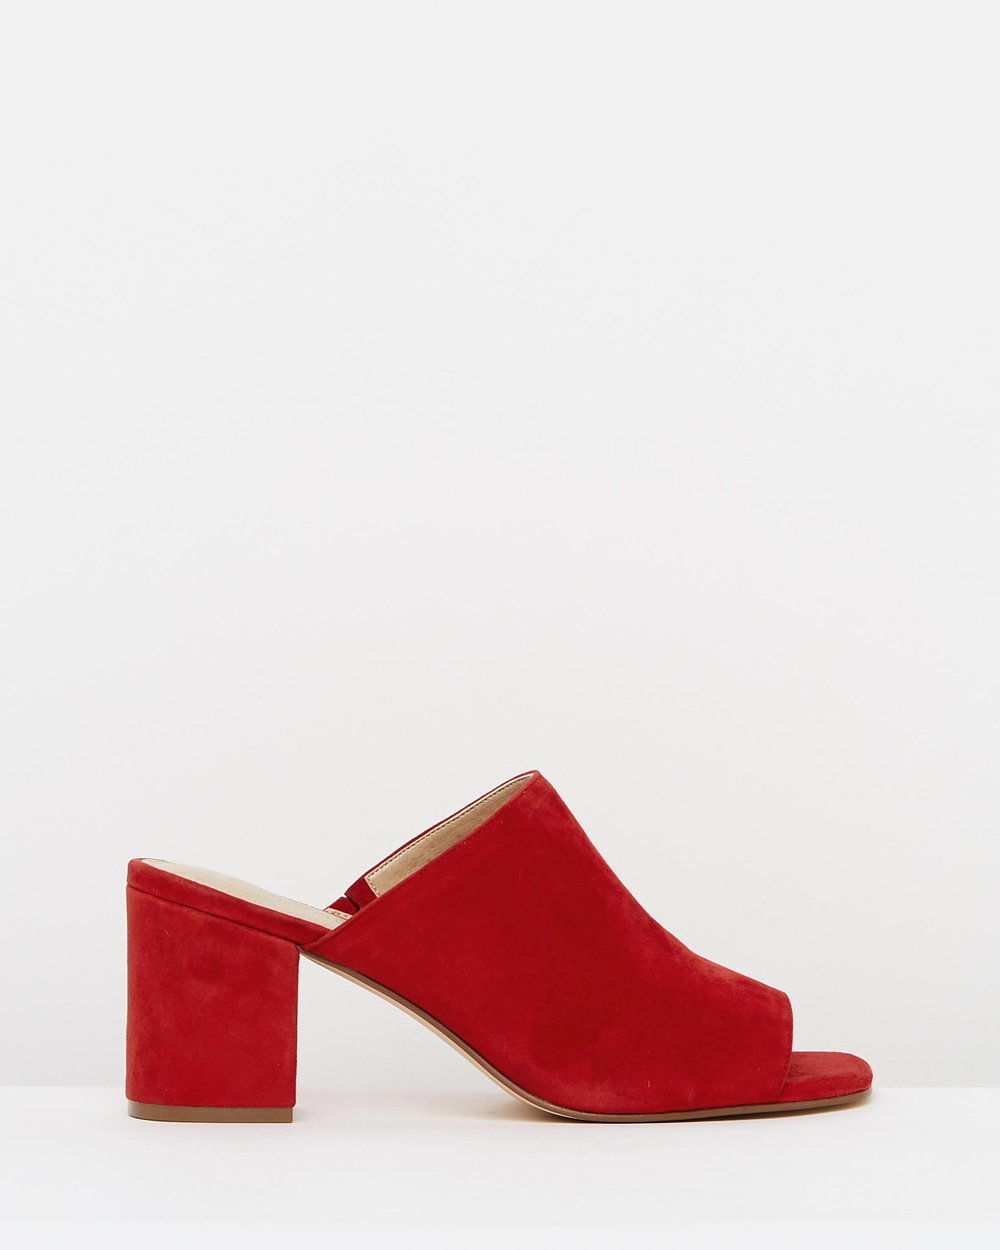 Atmos & Here ICONIC EXCLUSIVE Em Leather Mules Mid-low heels Red Suede ICONIC EXCLUSIVE Em Leather Mules